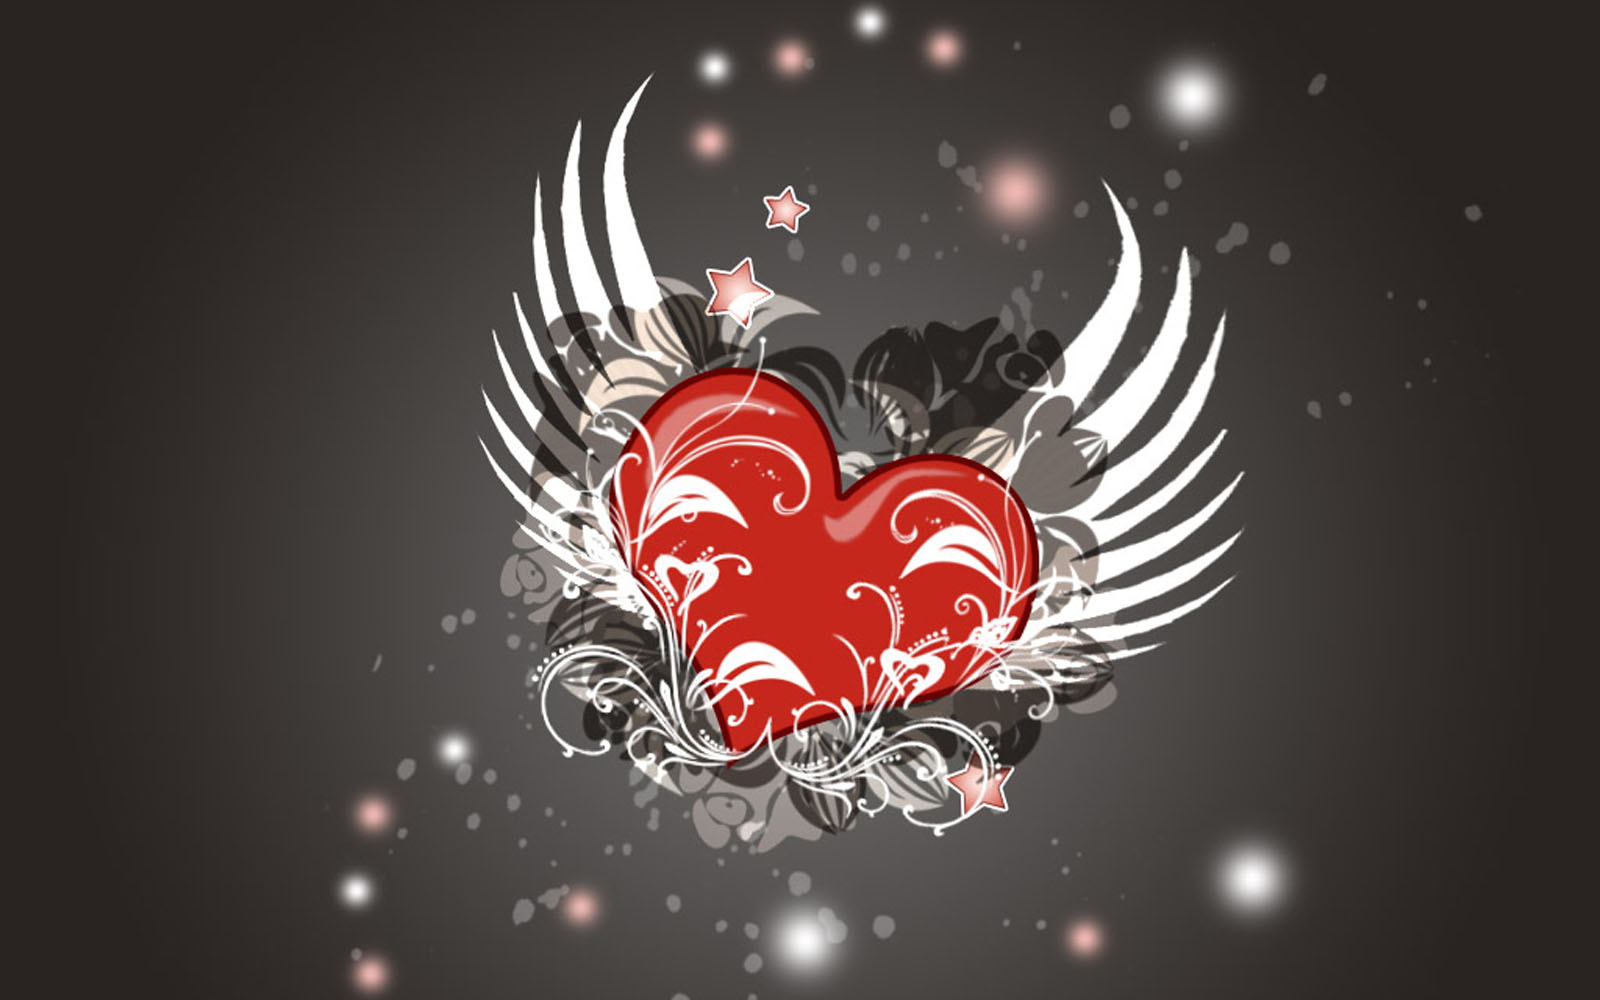 Love Heart Gallery Wallpaper : wallpapers: Flying Hearts Wallpapers